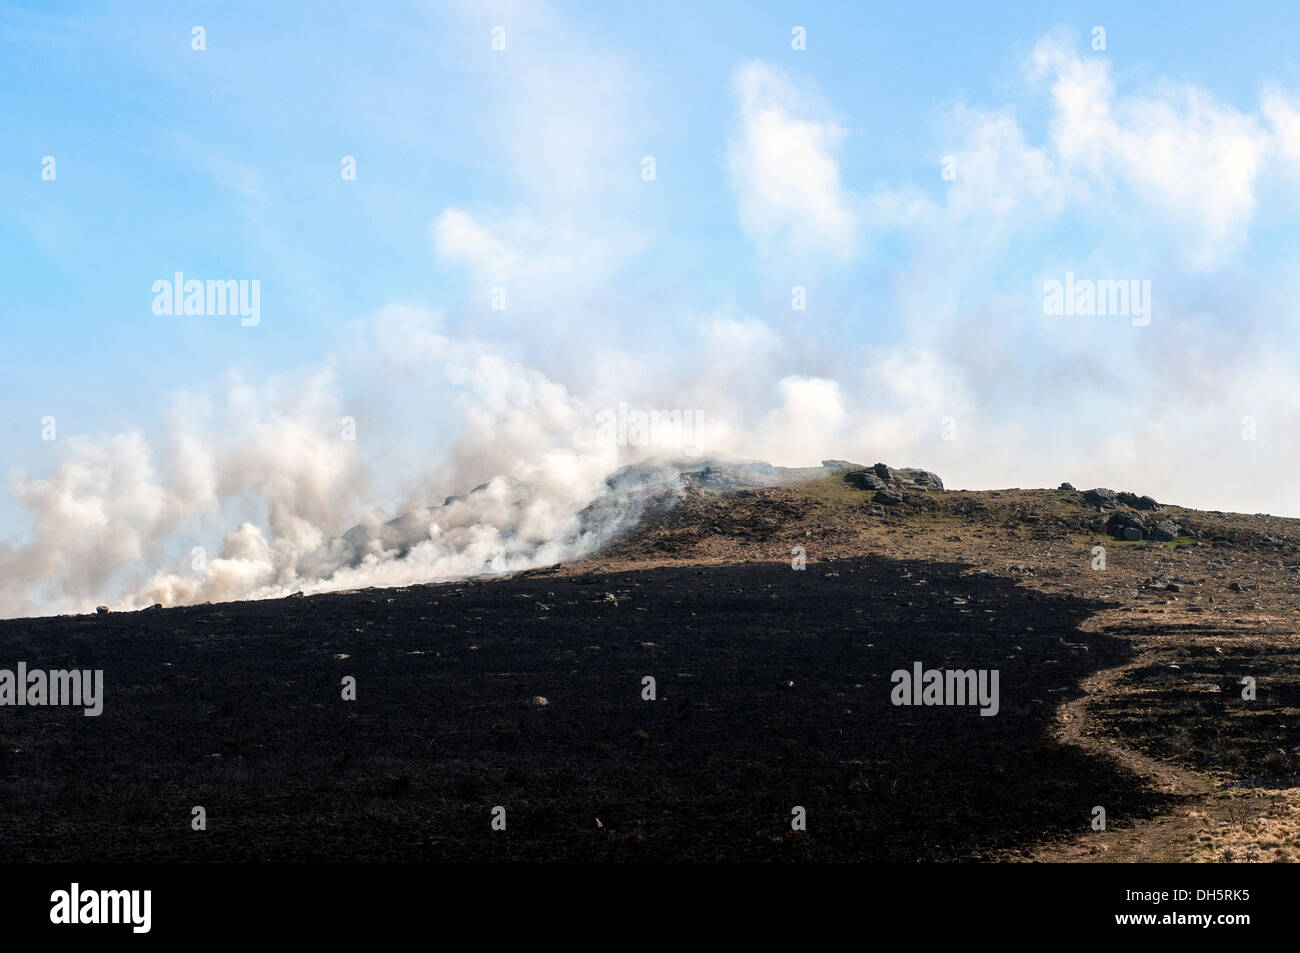 swaling on Dartmoor,peat, heather, fire, hill, flaming, natural, moorland, head, dunnet, disaster, burn, flames, nature, uncontr - Stock Image